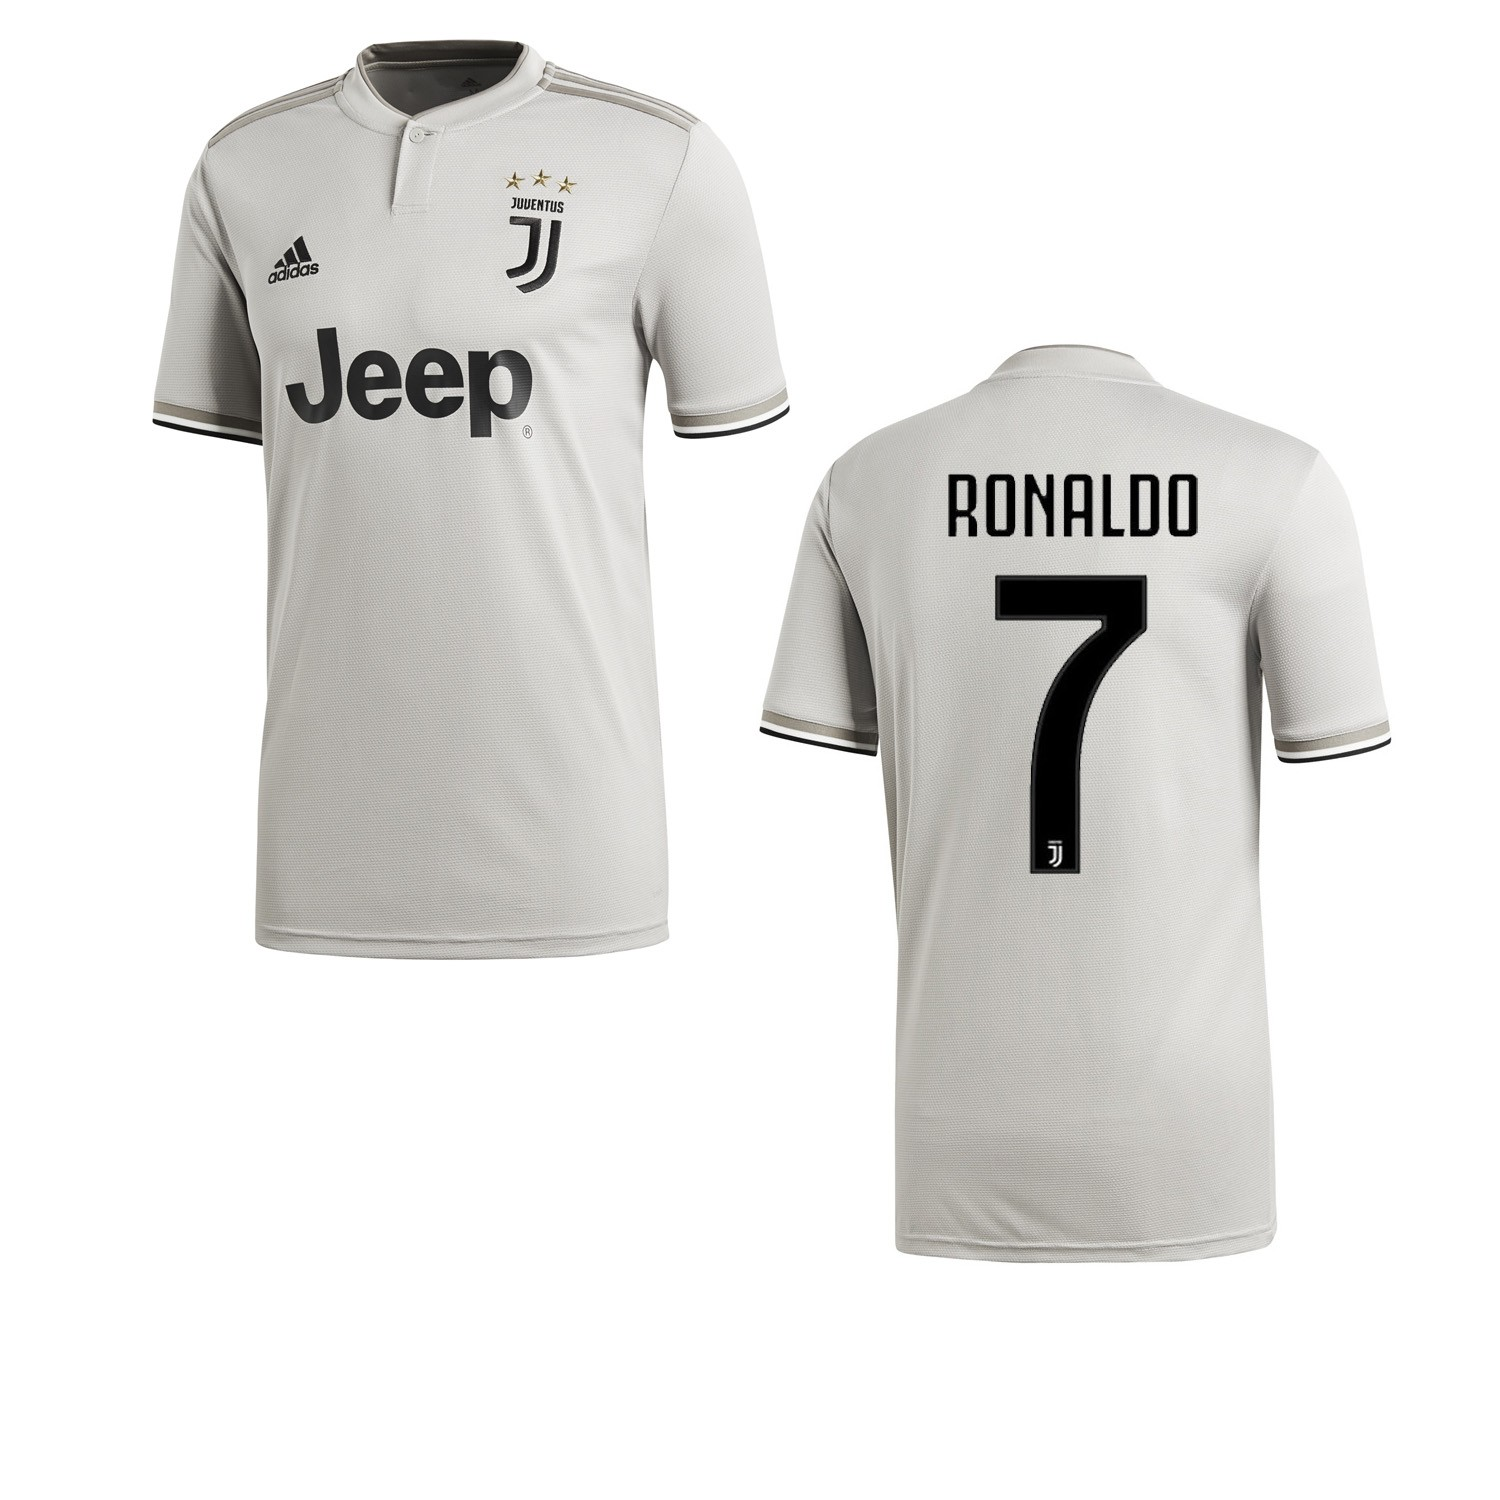 sports shoes 76780 d258f Juventus 7 Ronaldo away shirt 2018/19 Adidas